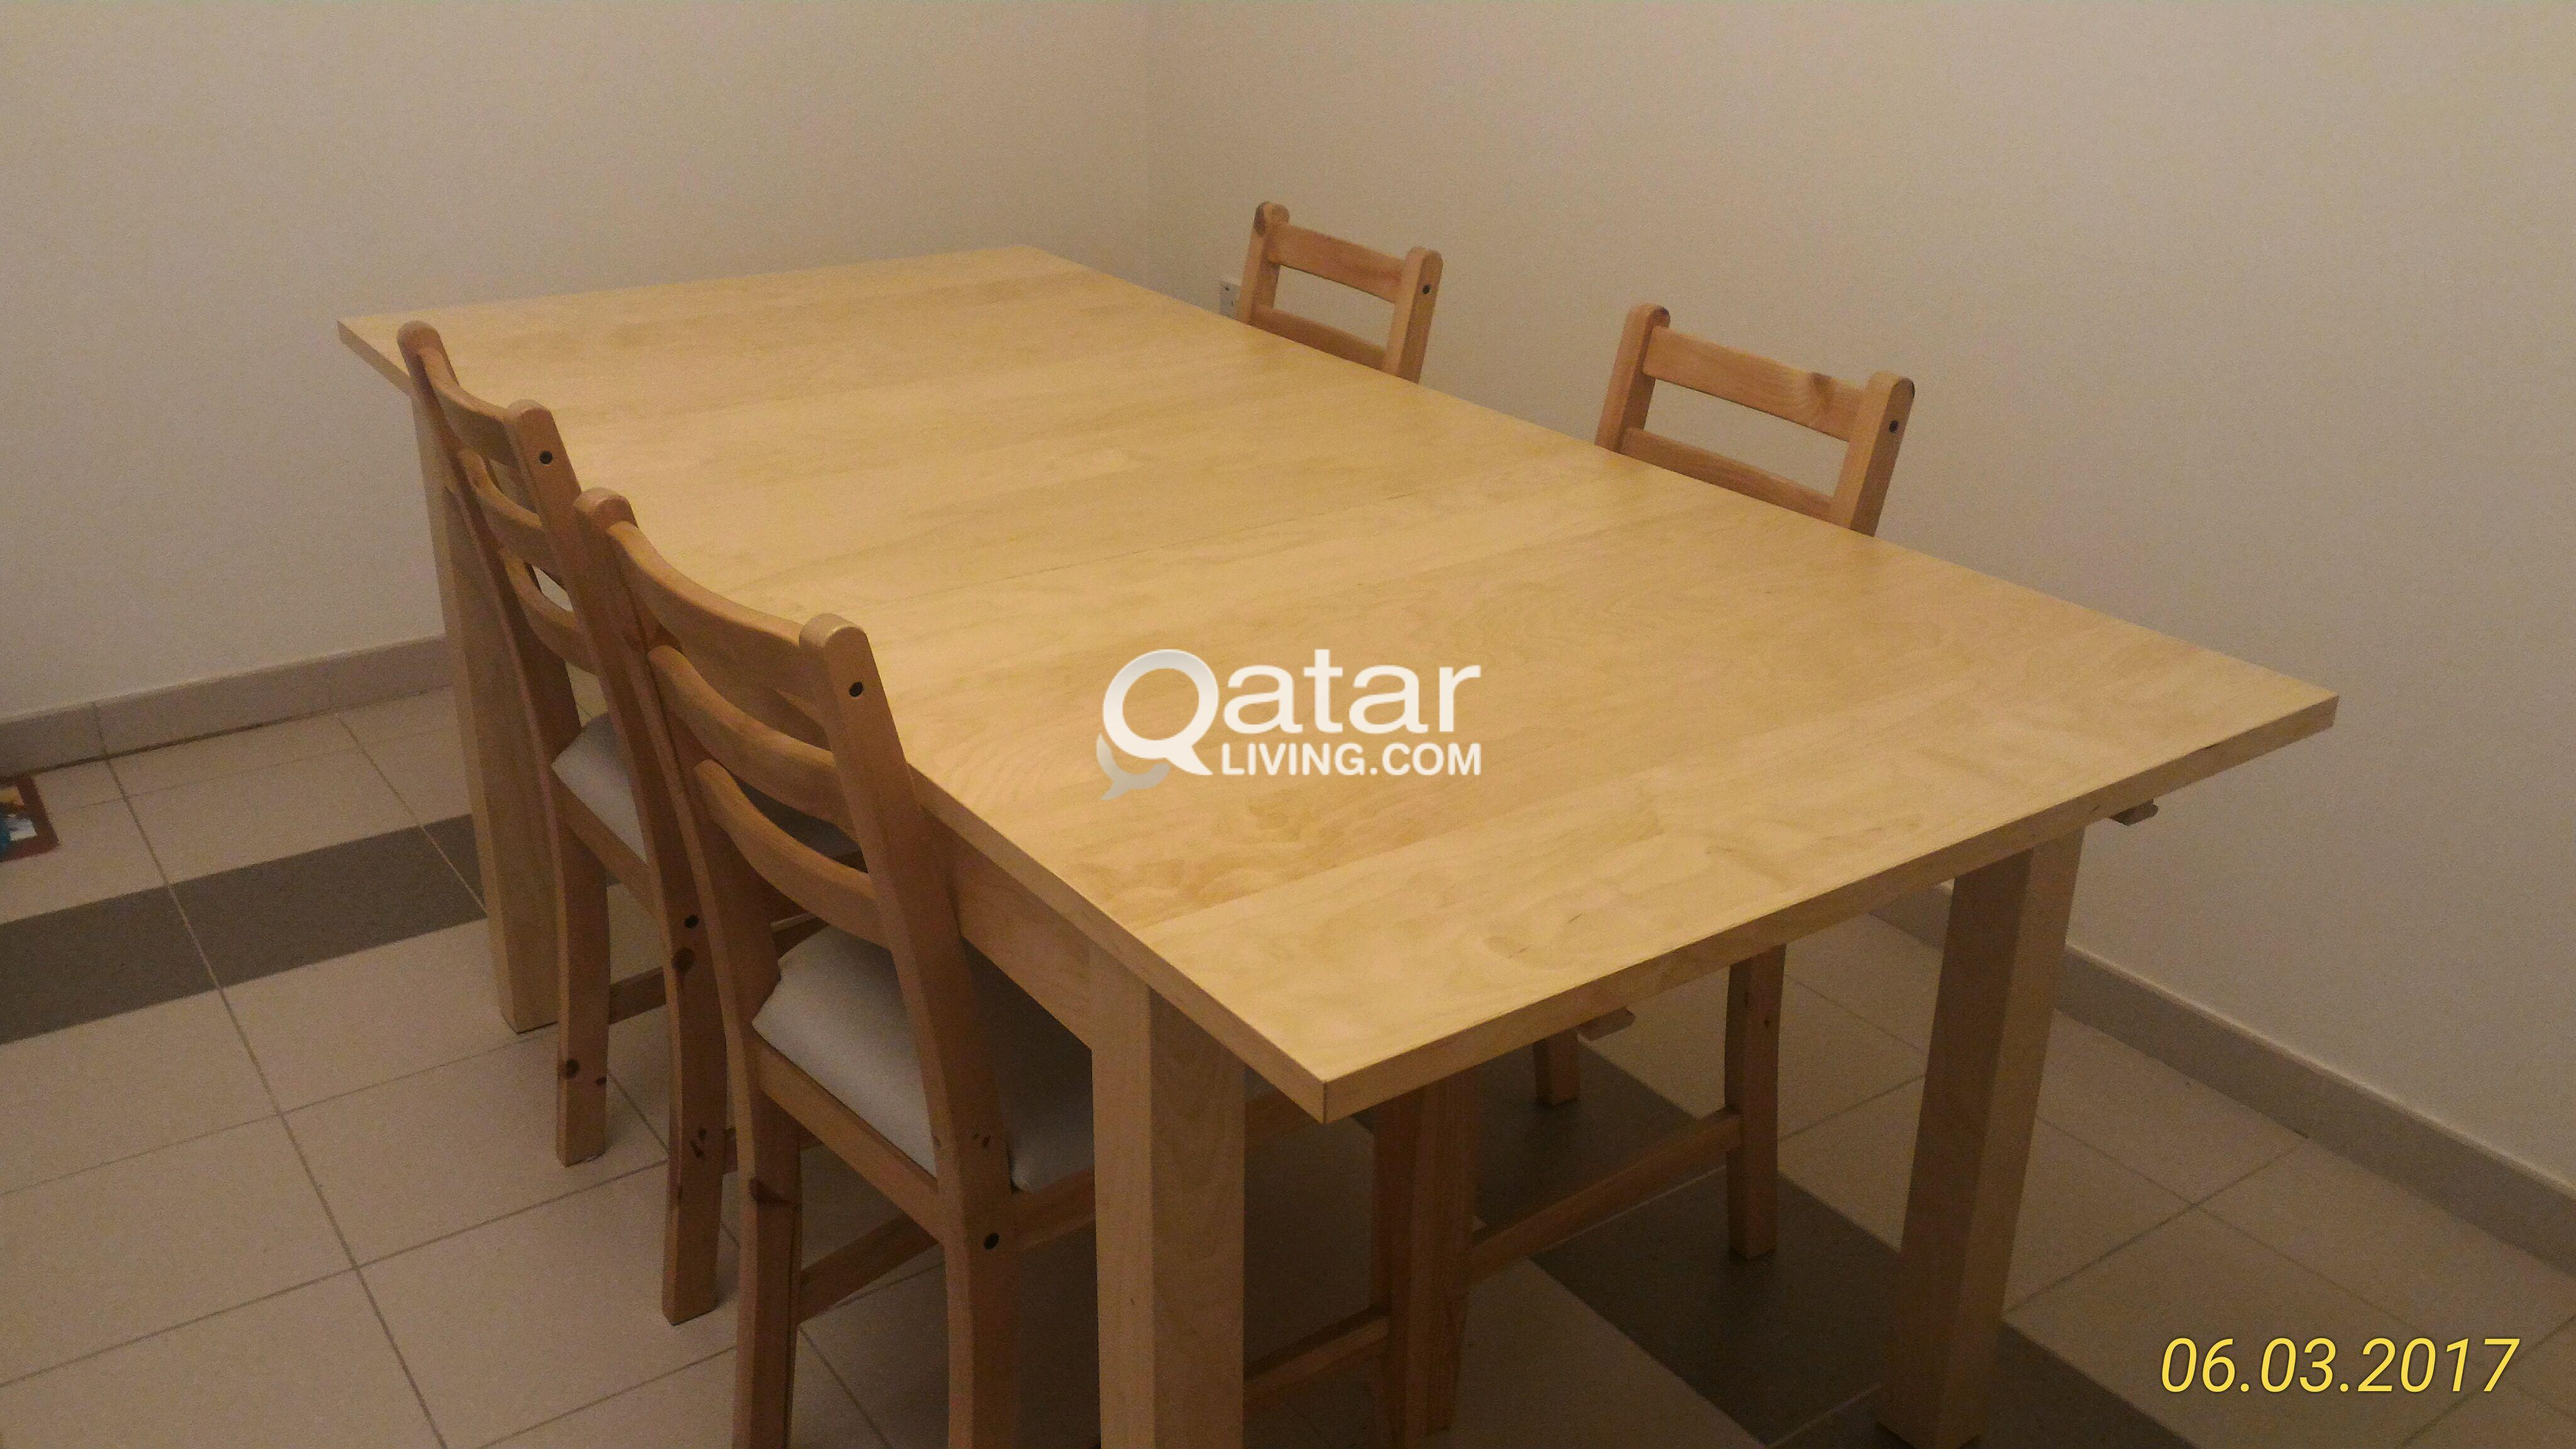 Ikea Stornas Dining Table Qatar Living